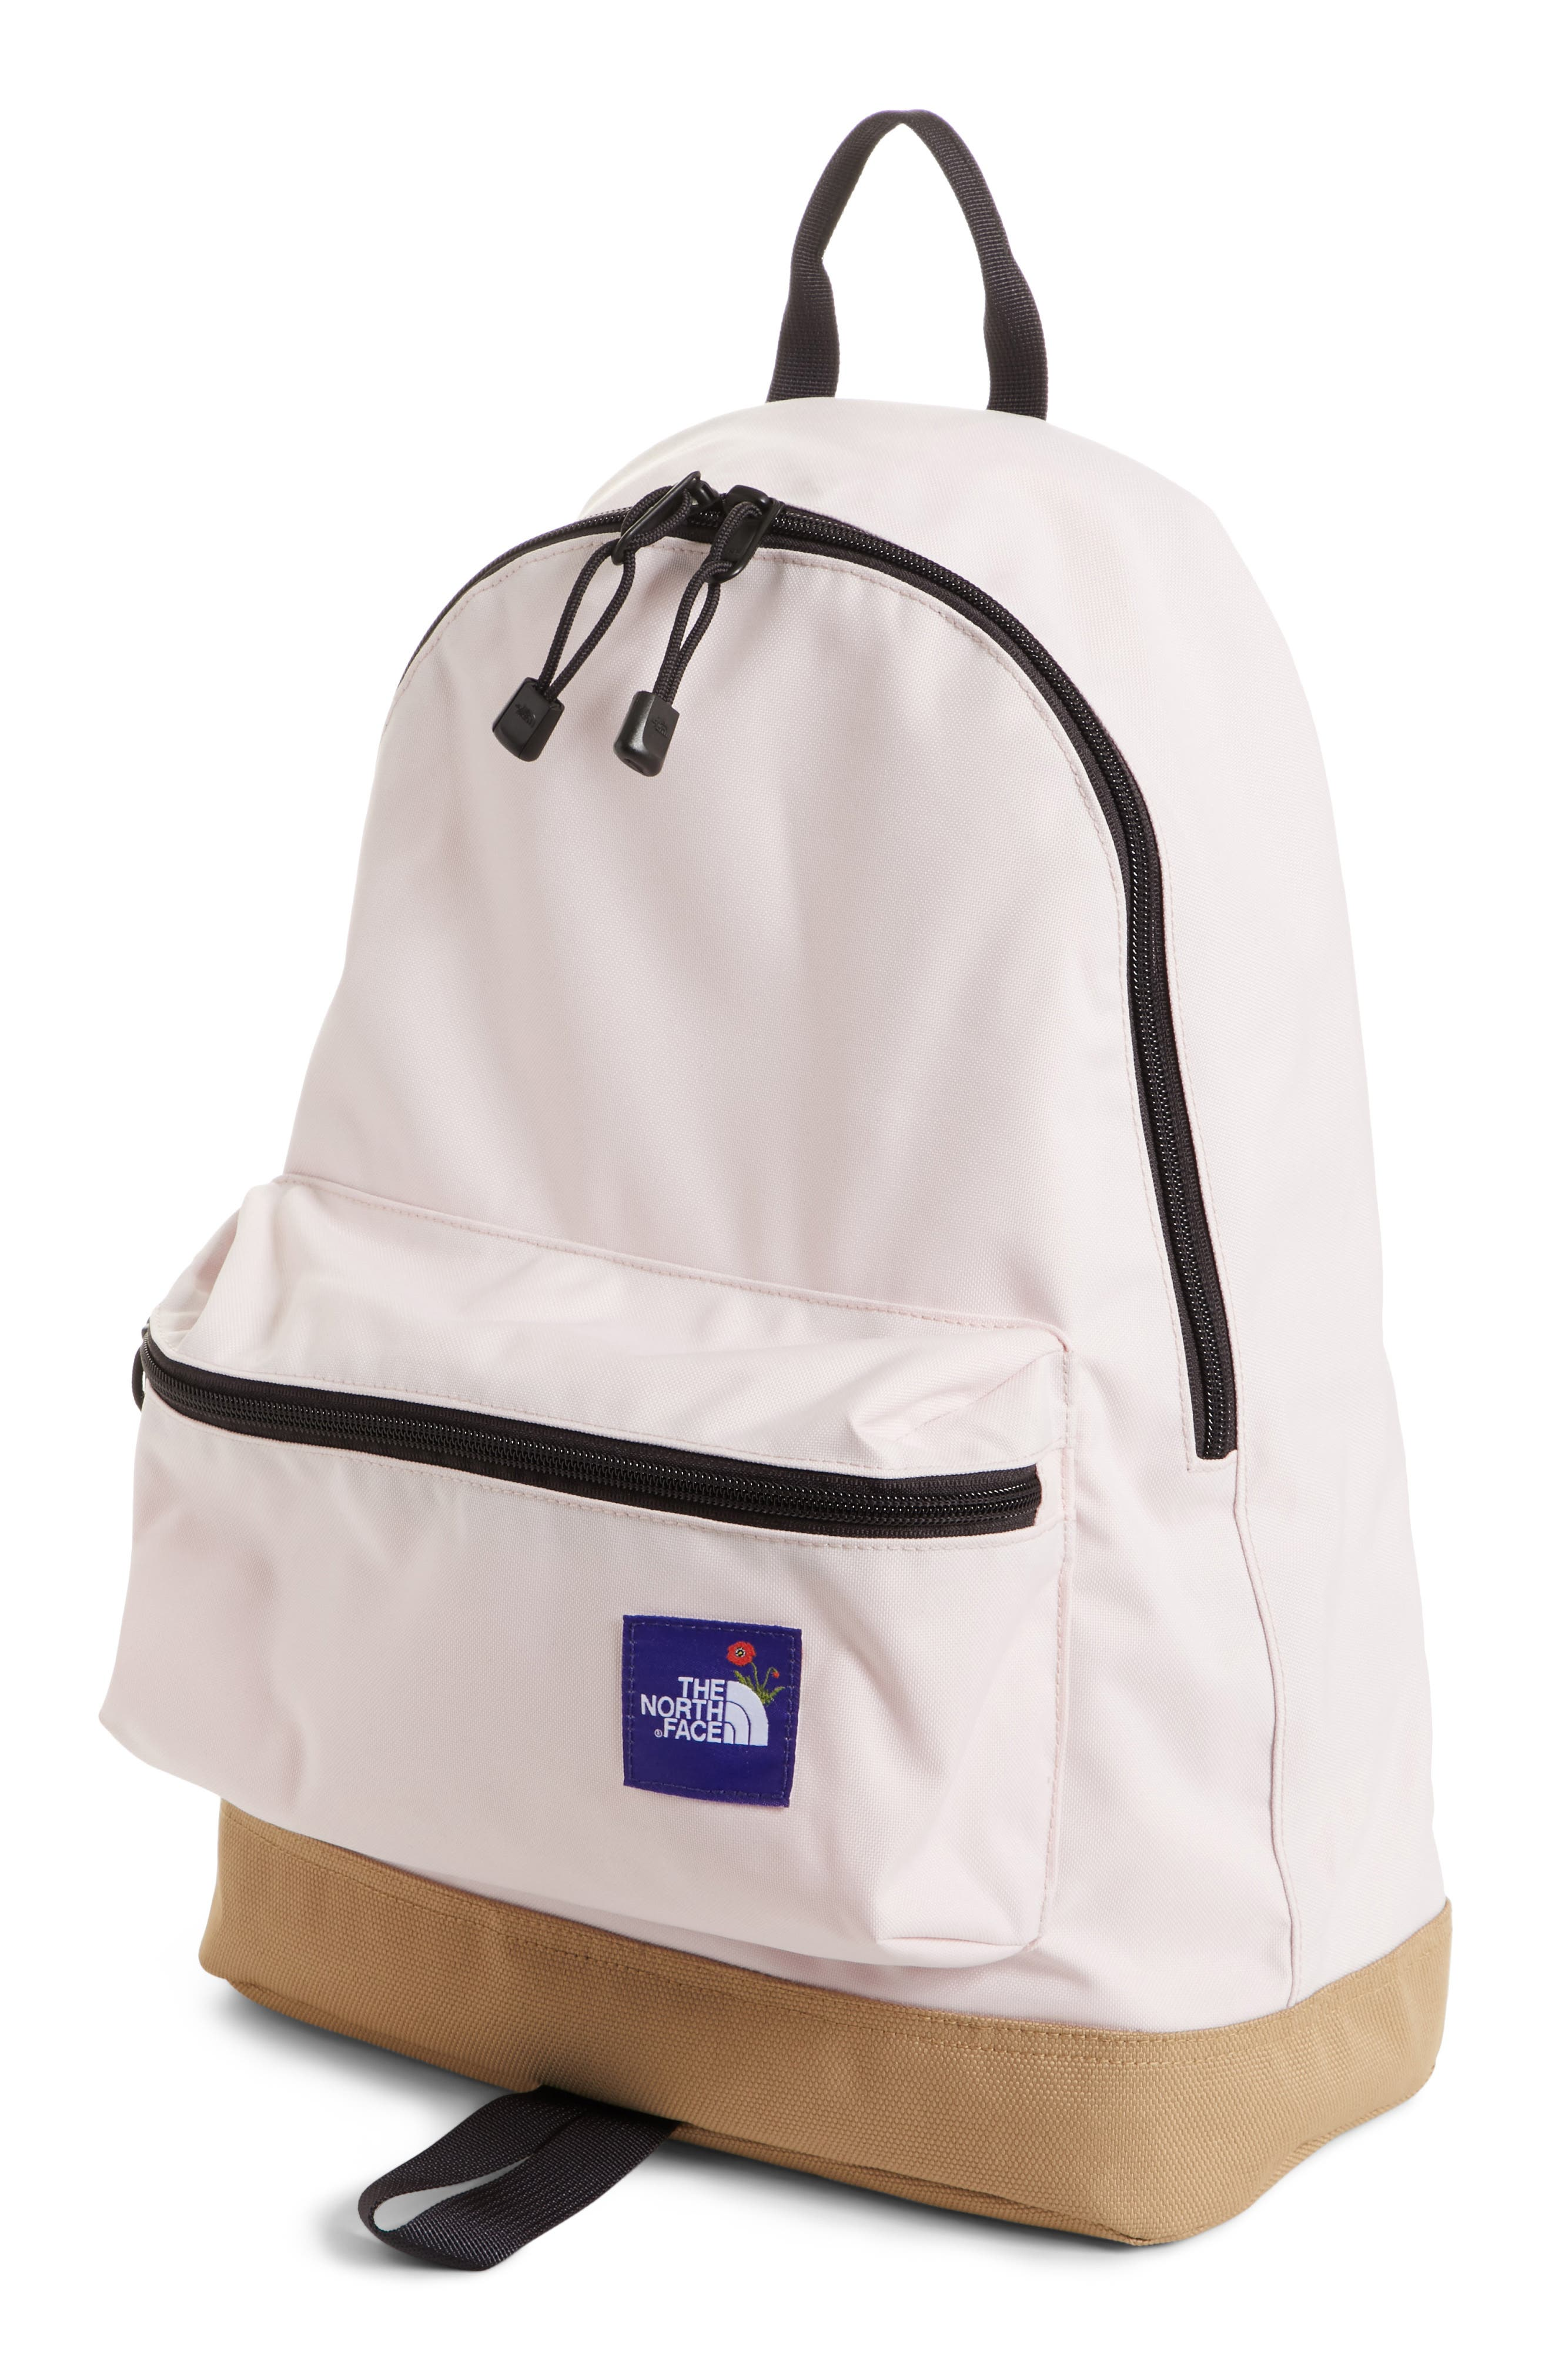 The North Face Mini OK Berkeley Backpack